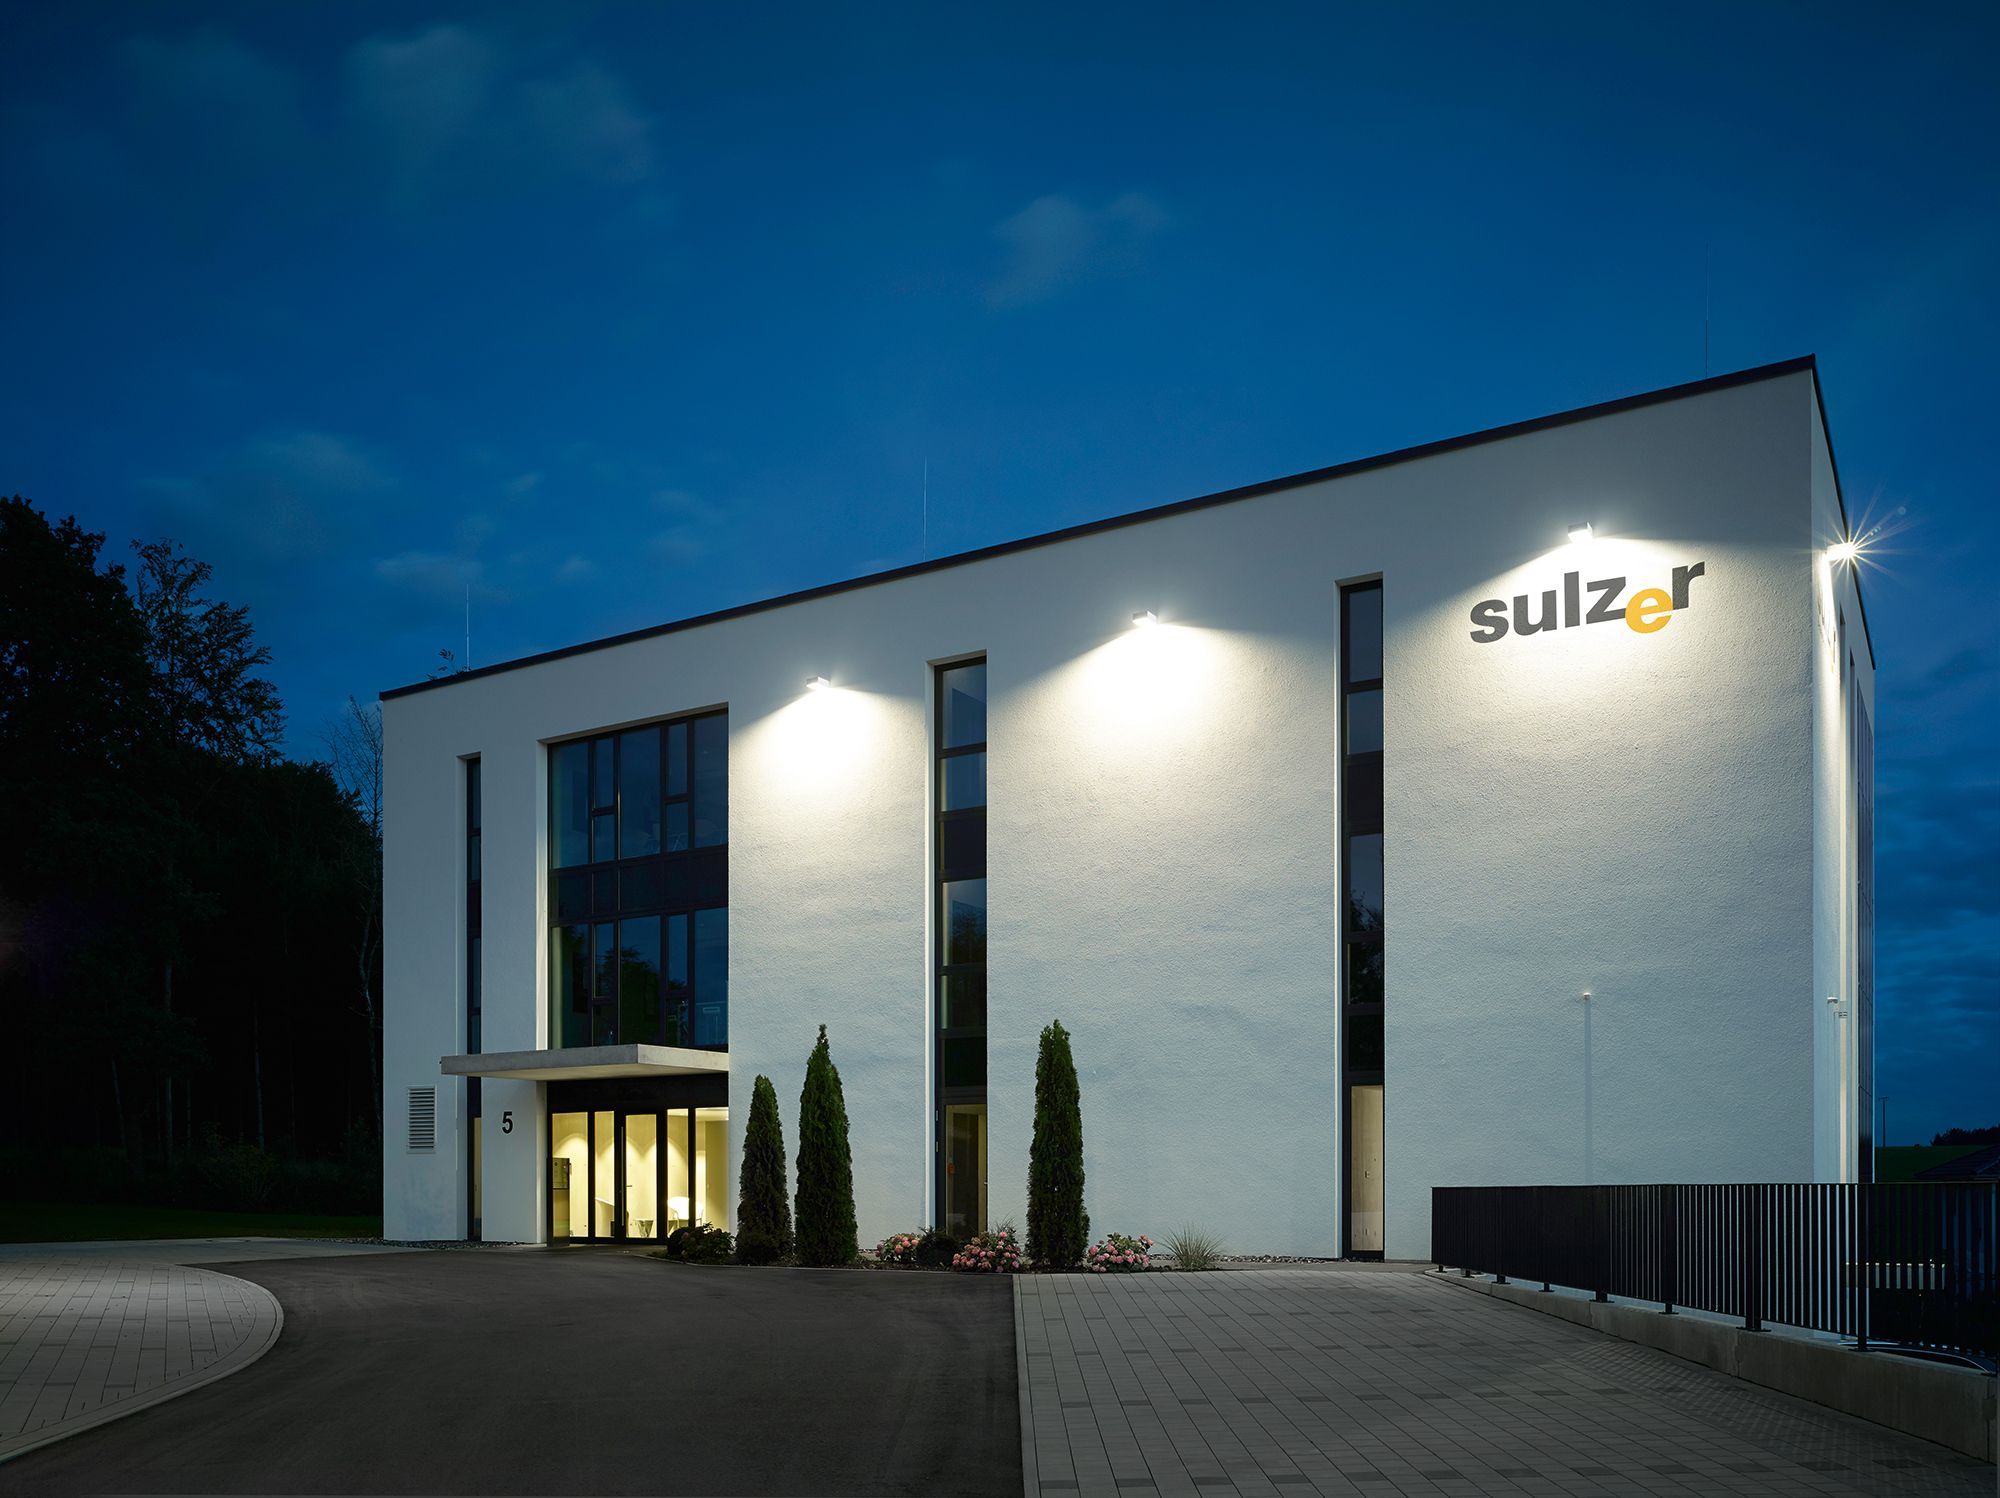 Luminaire Indirect pour led wall luminaire with directed light; designed for direct/indirect